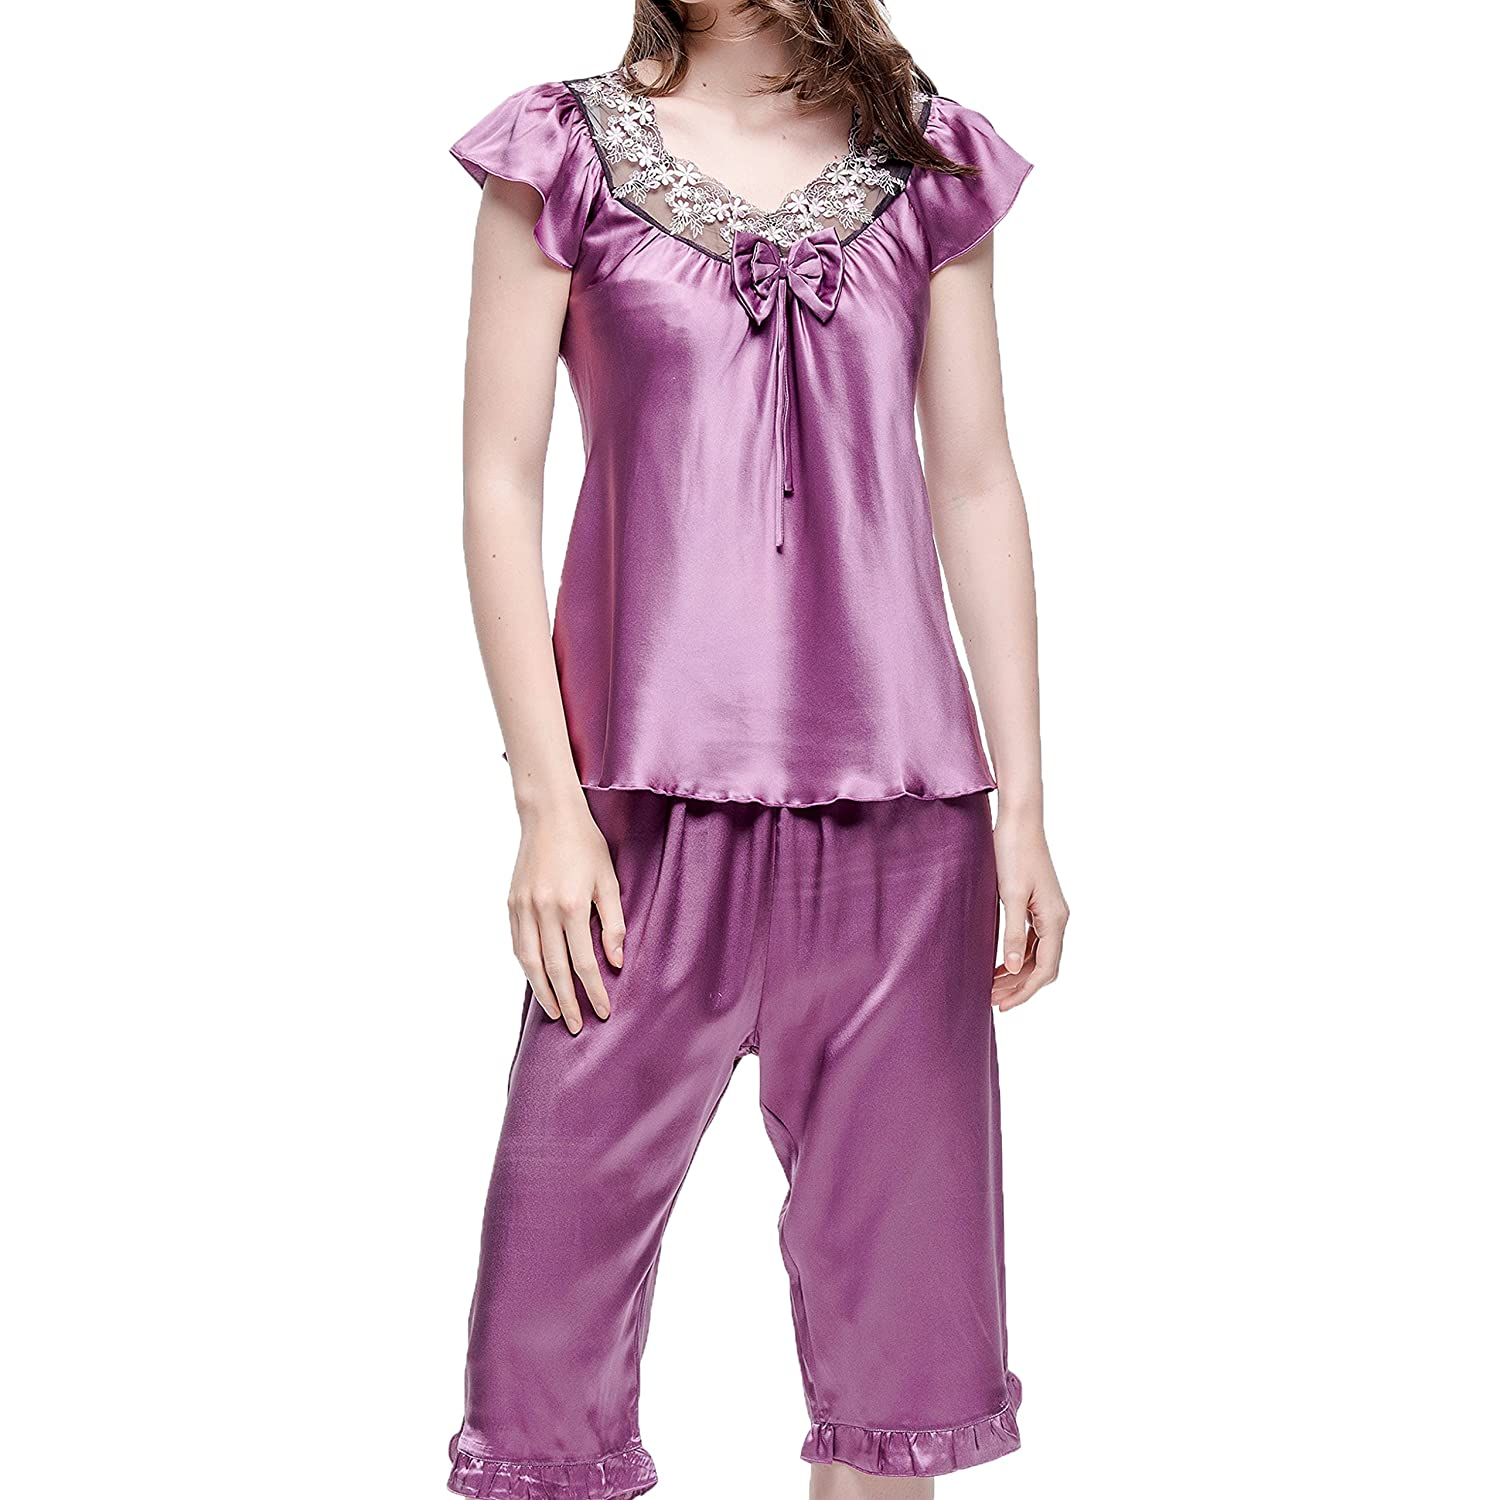 61b651d1aaf0 Chesslyre Women s Silk Pajamas 2 Piece-Lace Embroidered Cap Sleeve Top With  Short Pants at Amazon Women s Clothing store